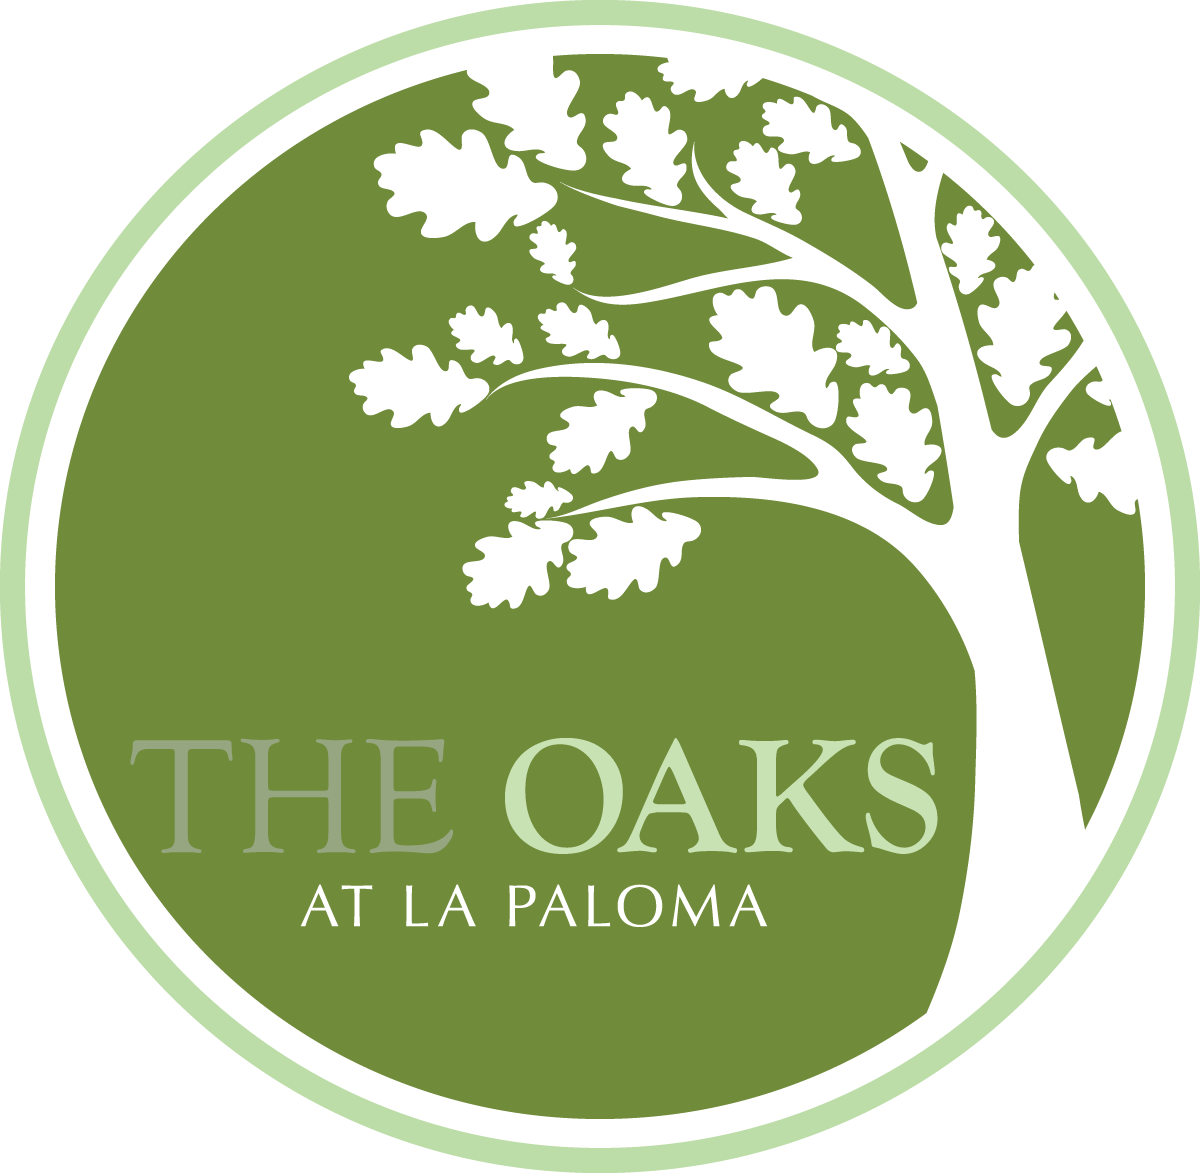 TheOaks-RoundFINAL-large